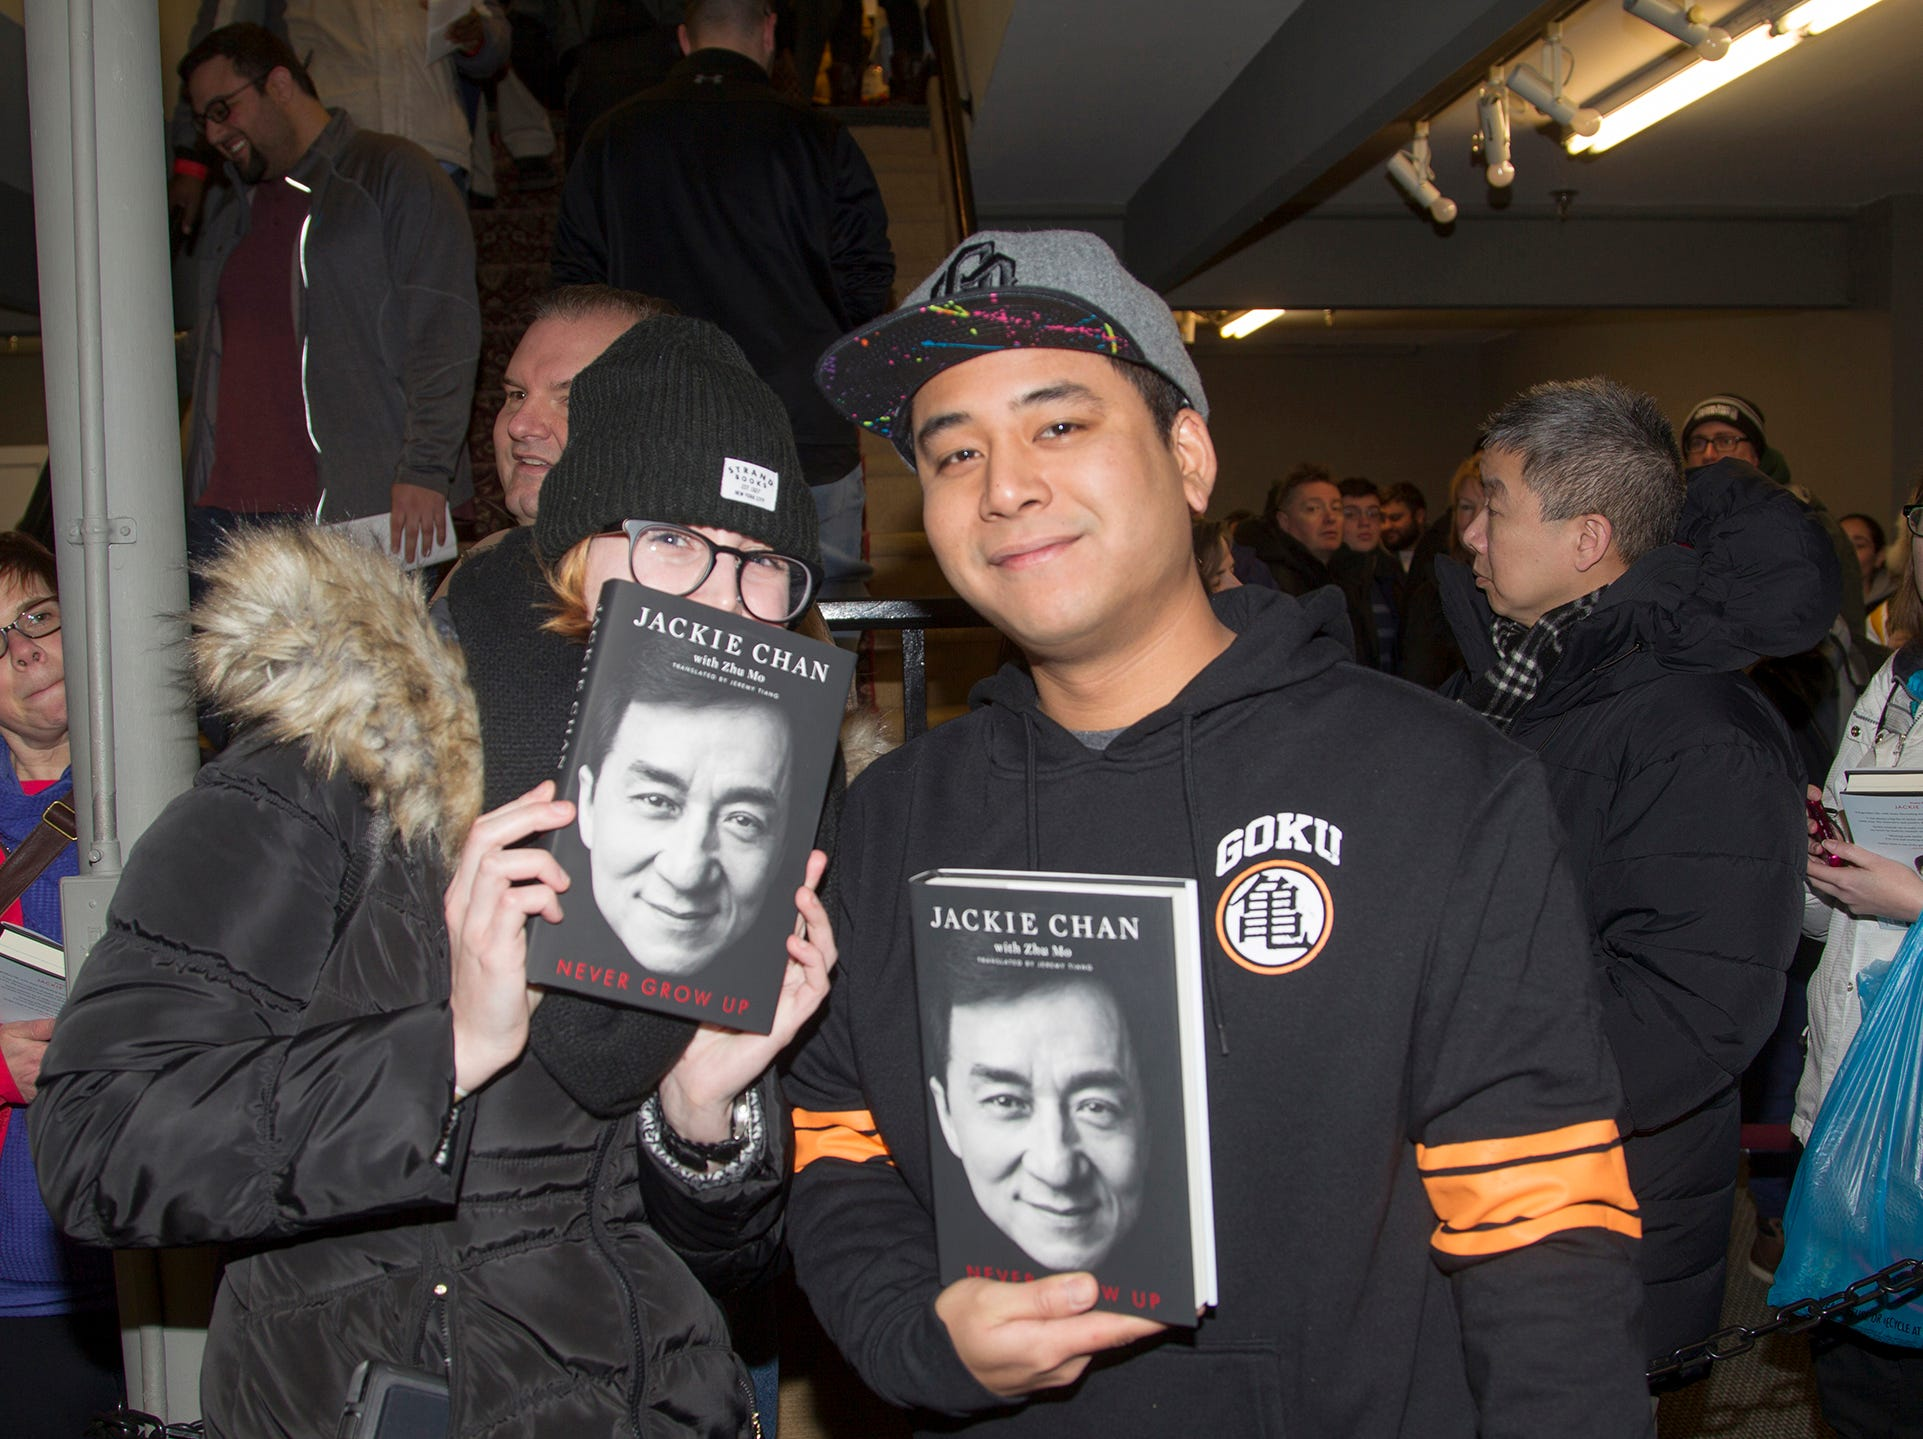 """Lori and Jim. Jackie Chan greets fans at Bookends in Ridgewood while signing his new book, """"Never Grow Up."""" 01/21/2019"""